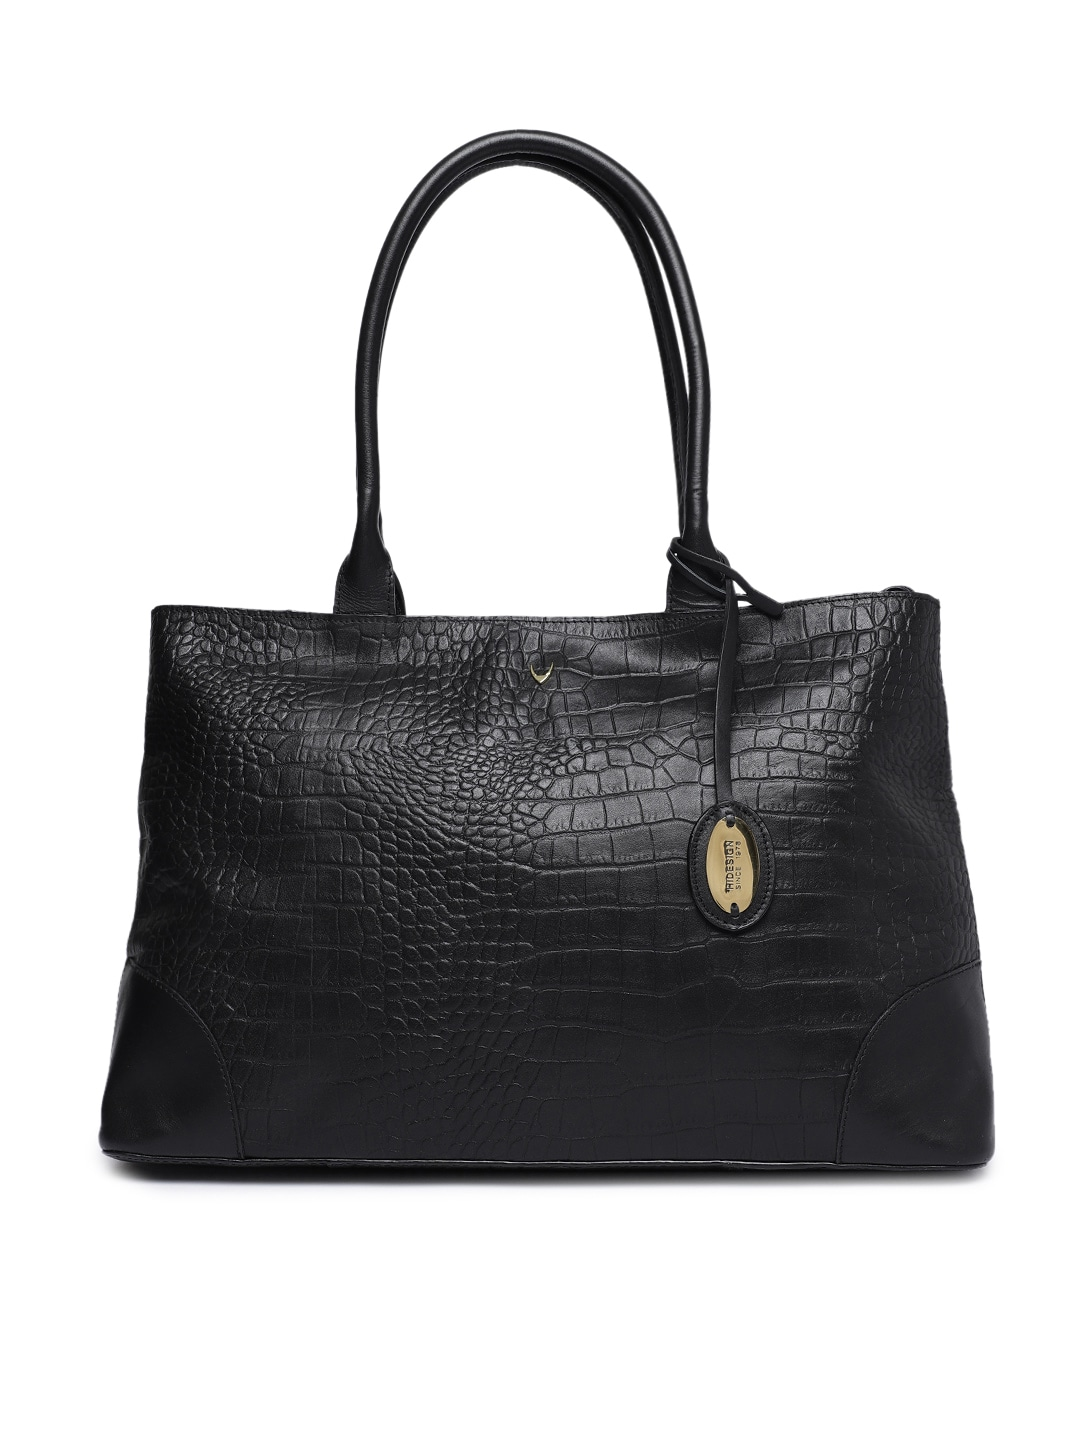 Bags Online - Buy Bags for men and Women Online in India  76992f52c009e